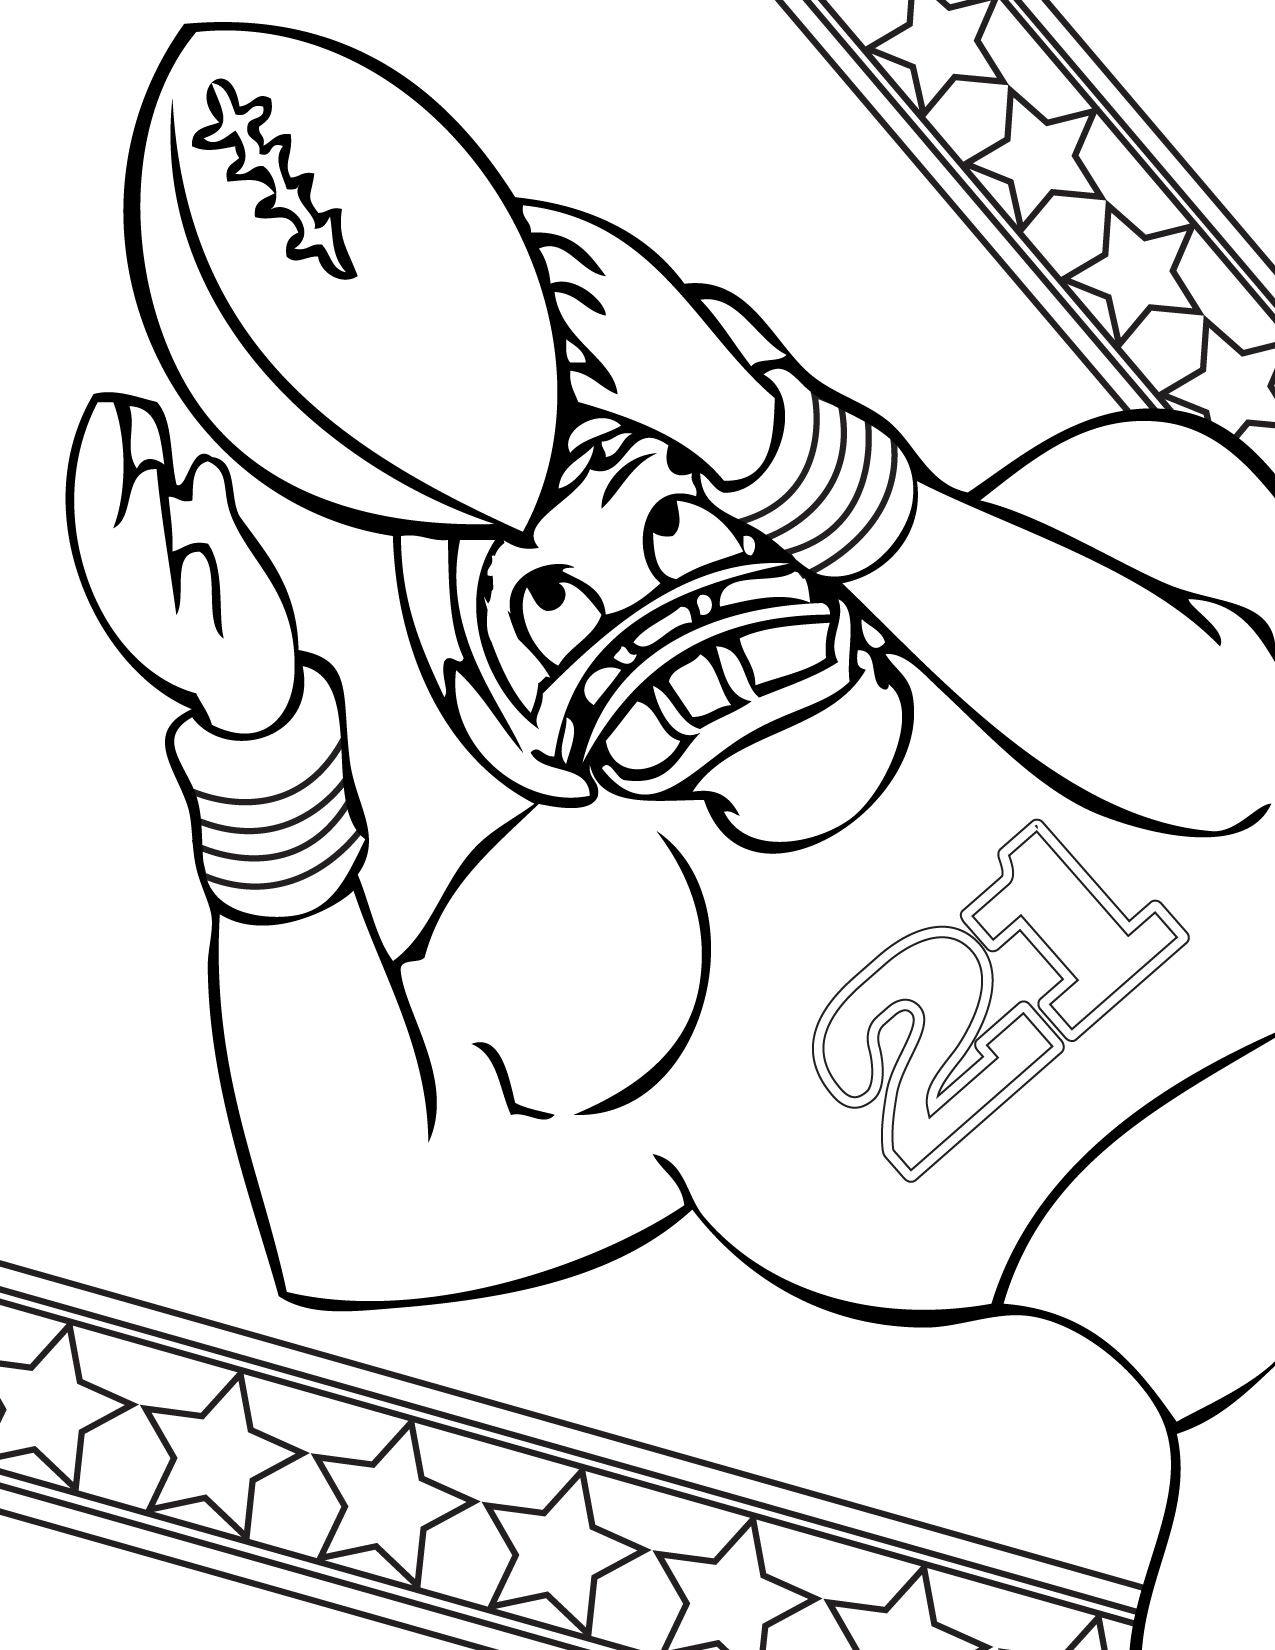 Football Coloring Page Handipoints